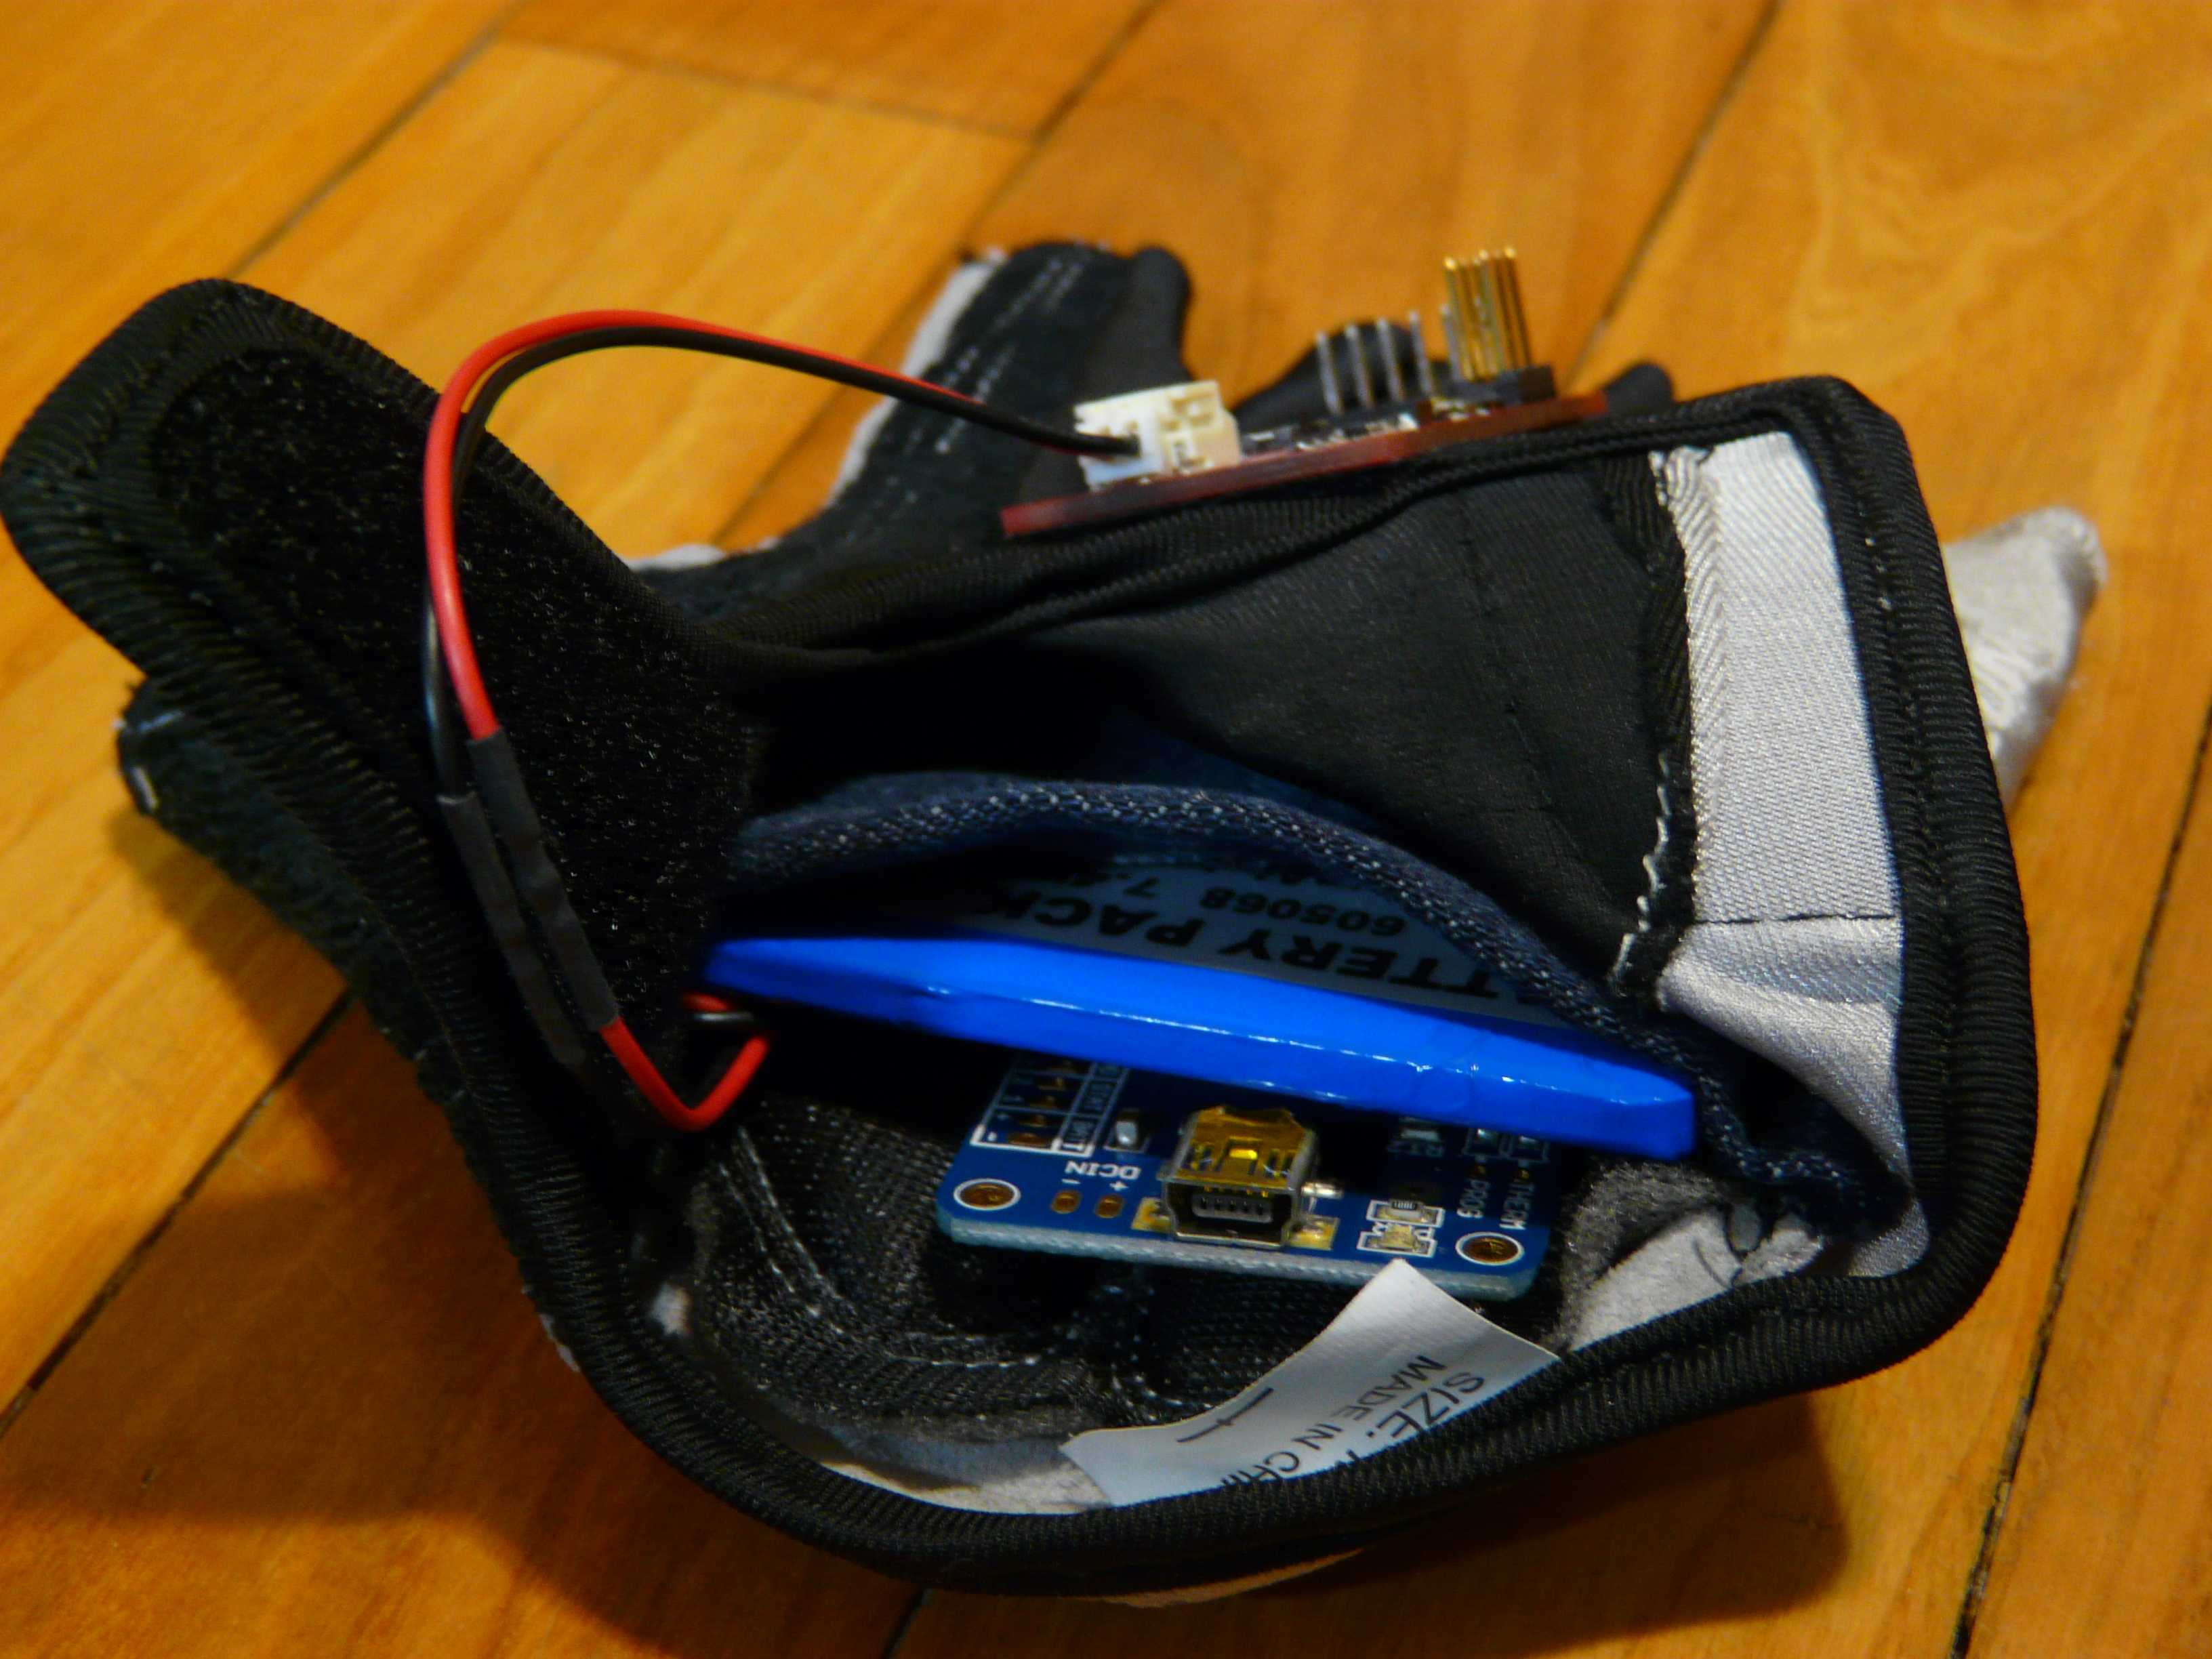 Battery and charger in glove